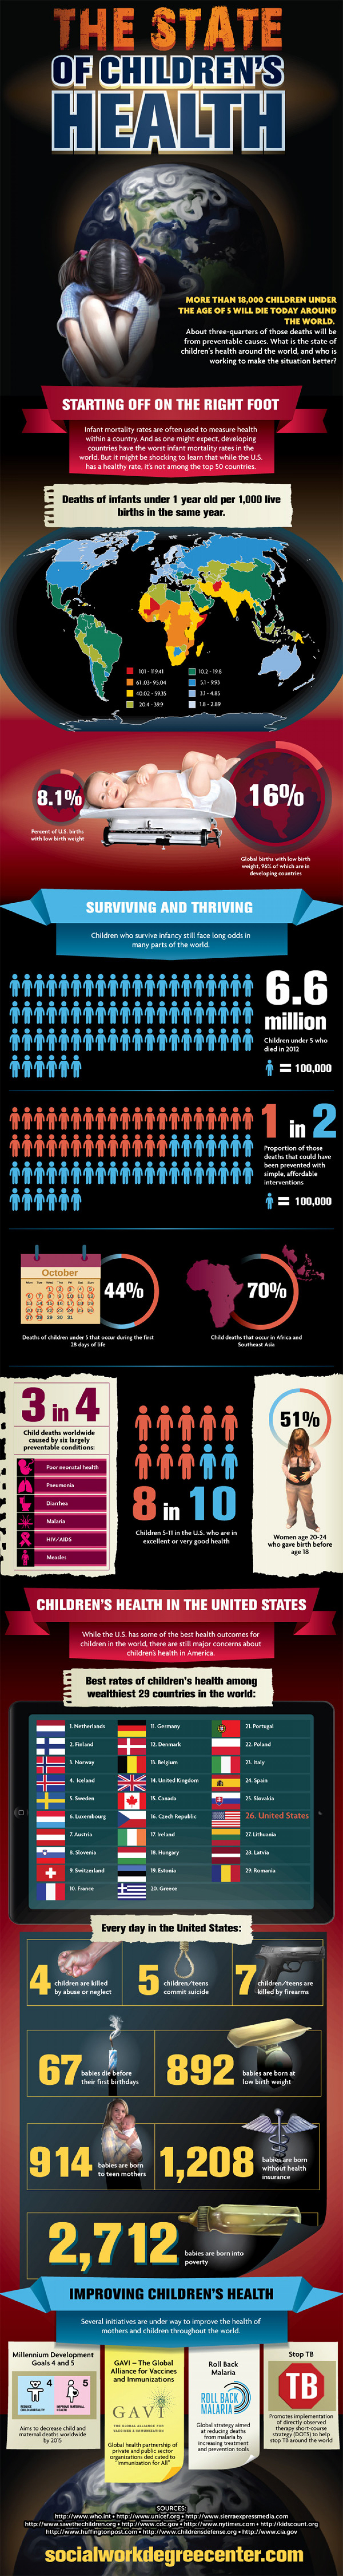 The State of Children's Health Infographic